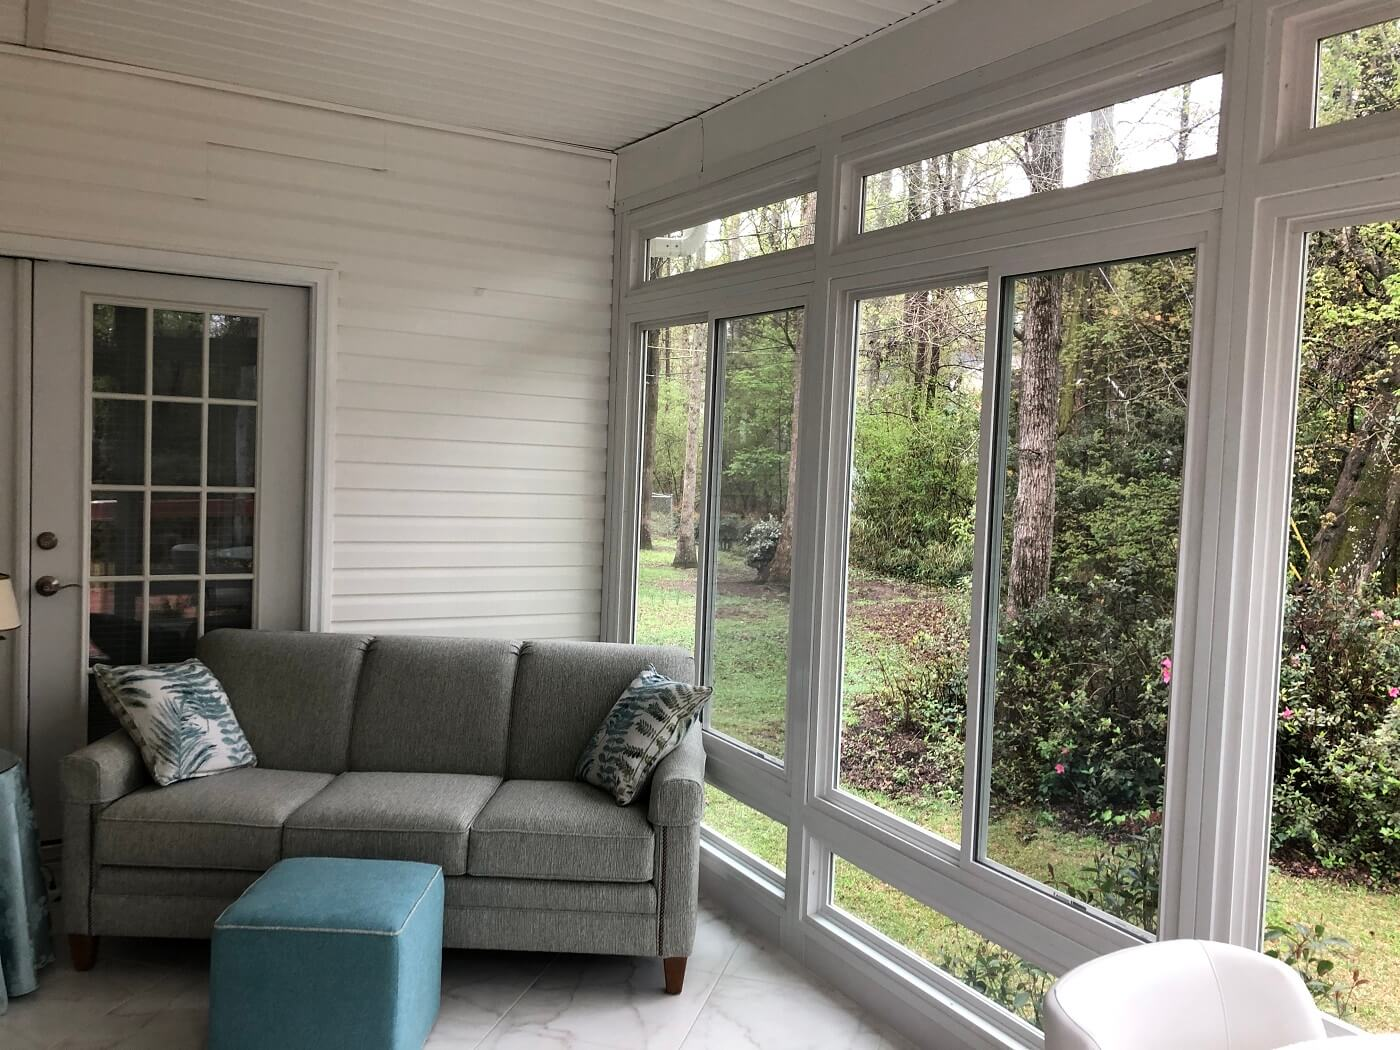 Couch on sunroom with backyard view